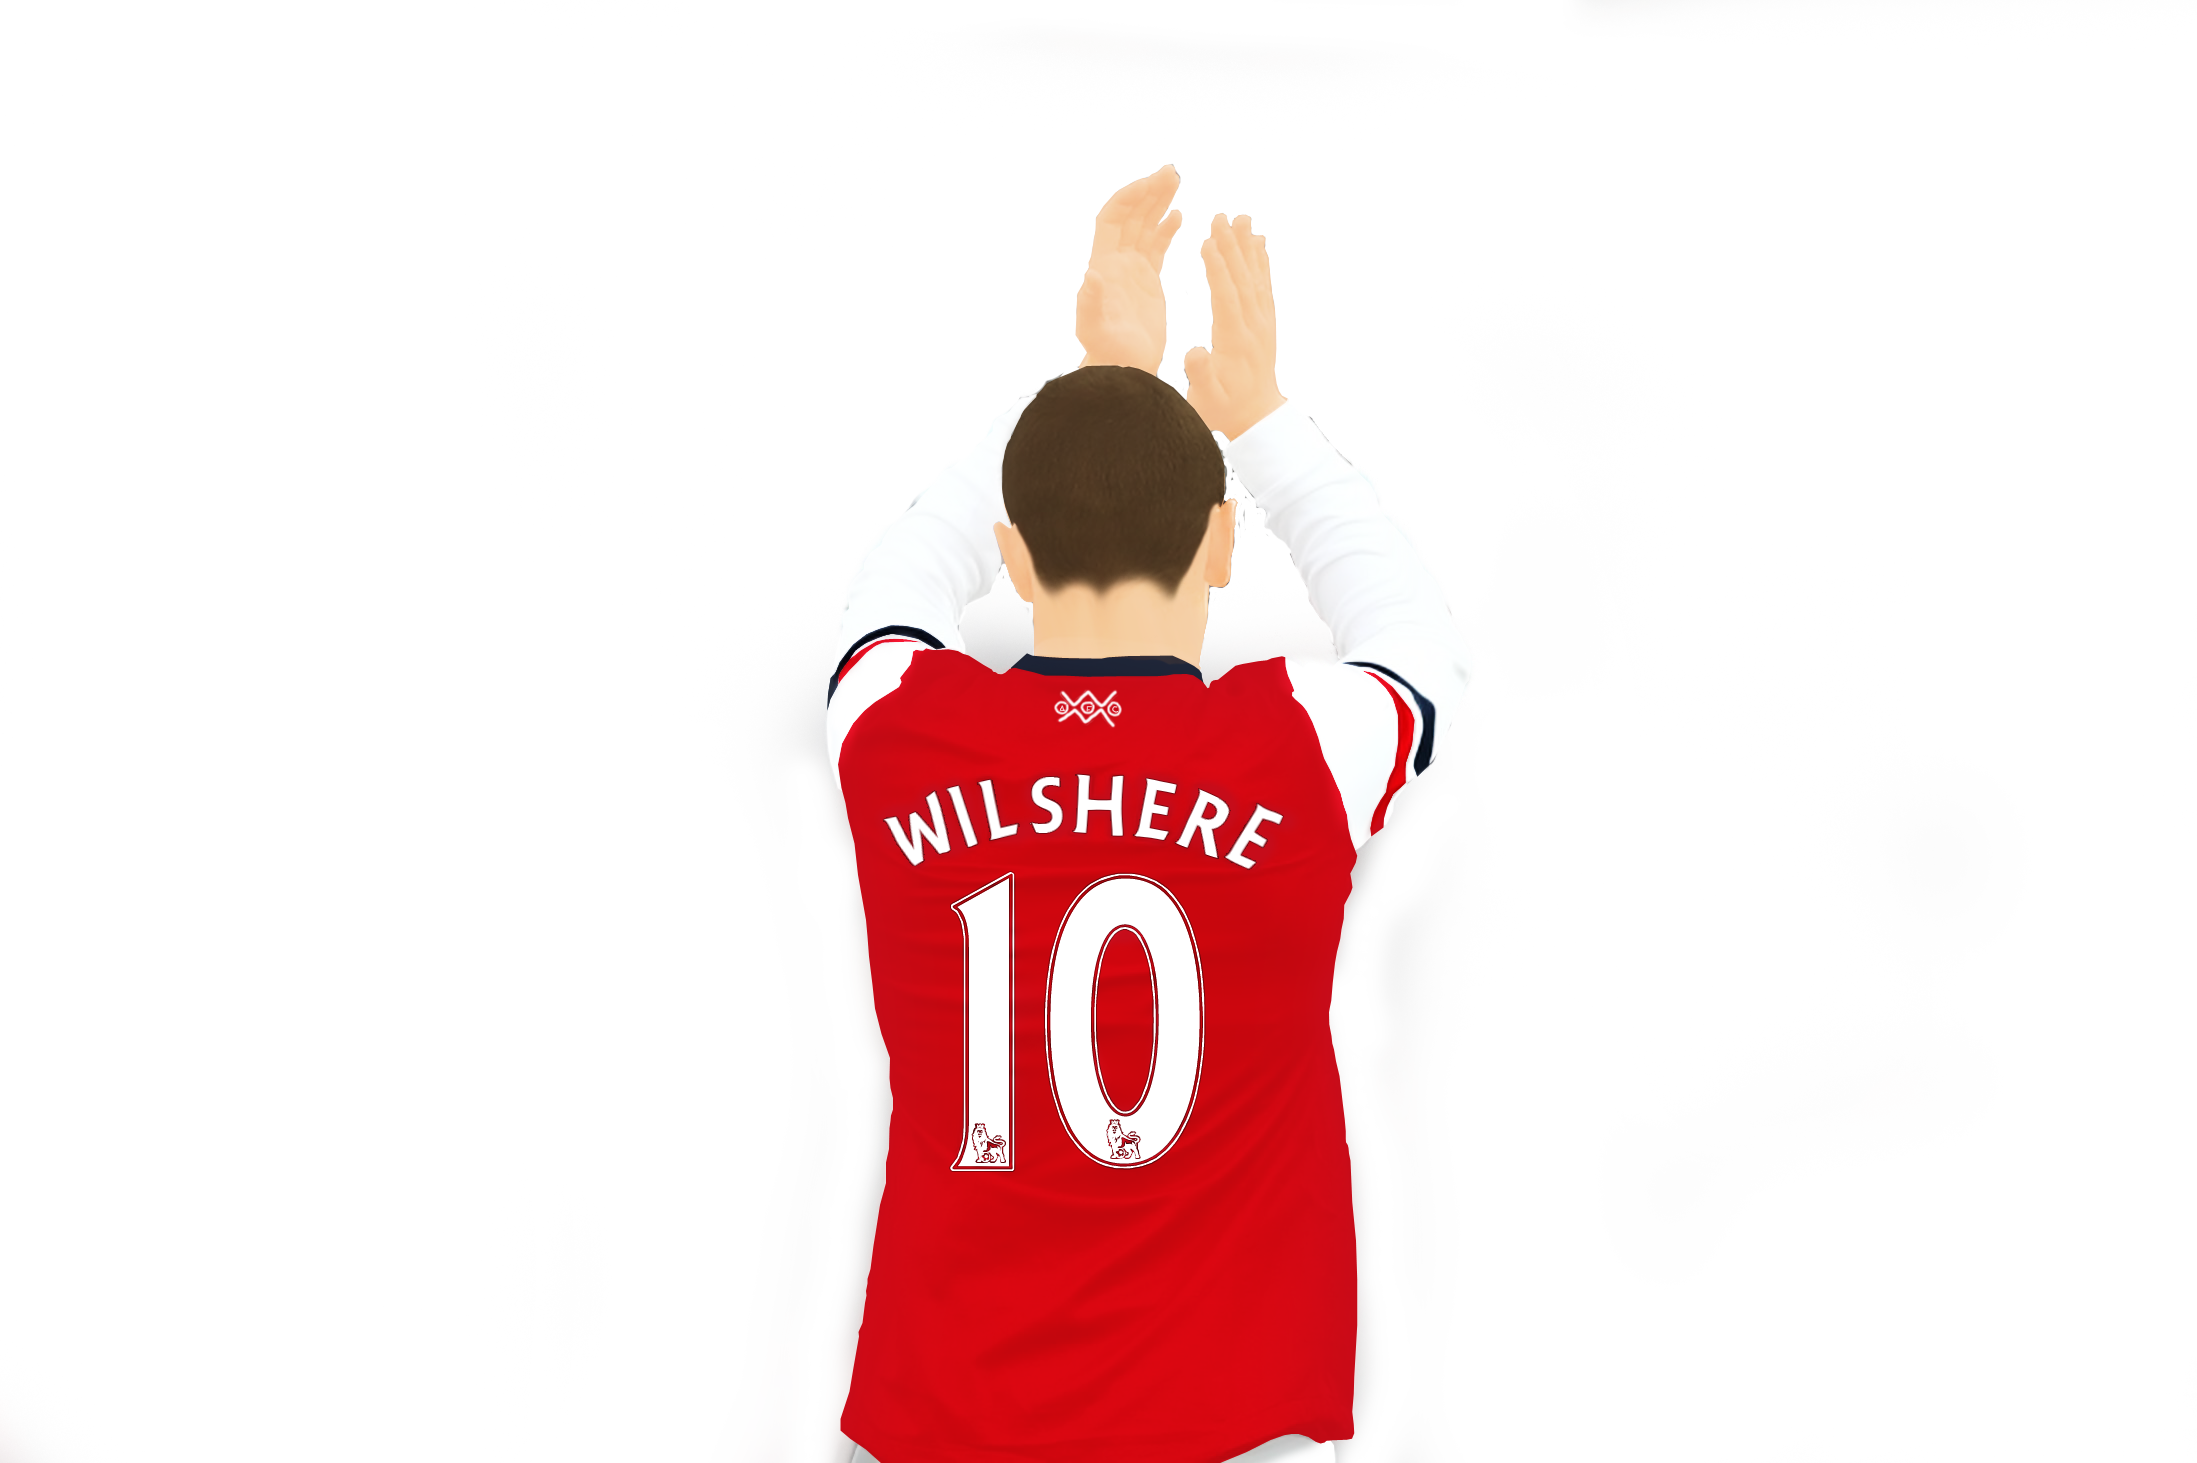 2197x1463 Arsenal Fc Vector Png Transparent Arsenal Fc Vector.png Images